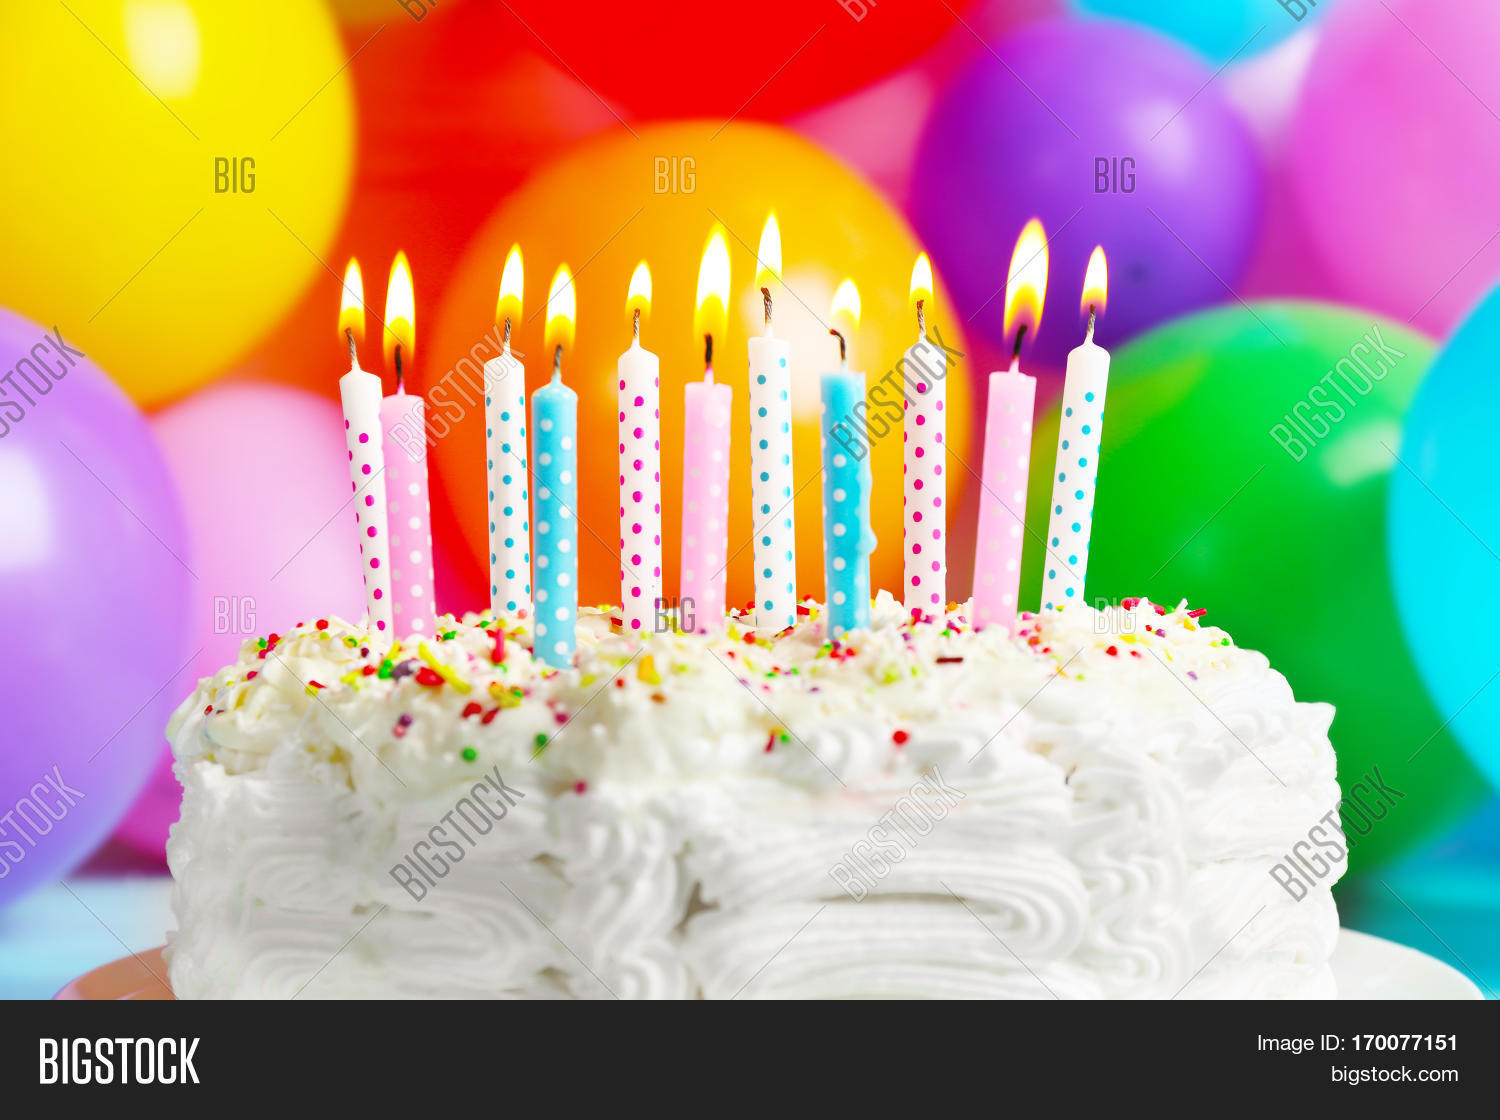 Birthday Cake With Candles On Balloons Background